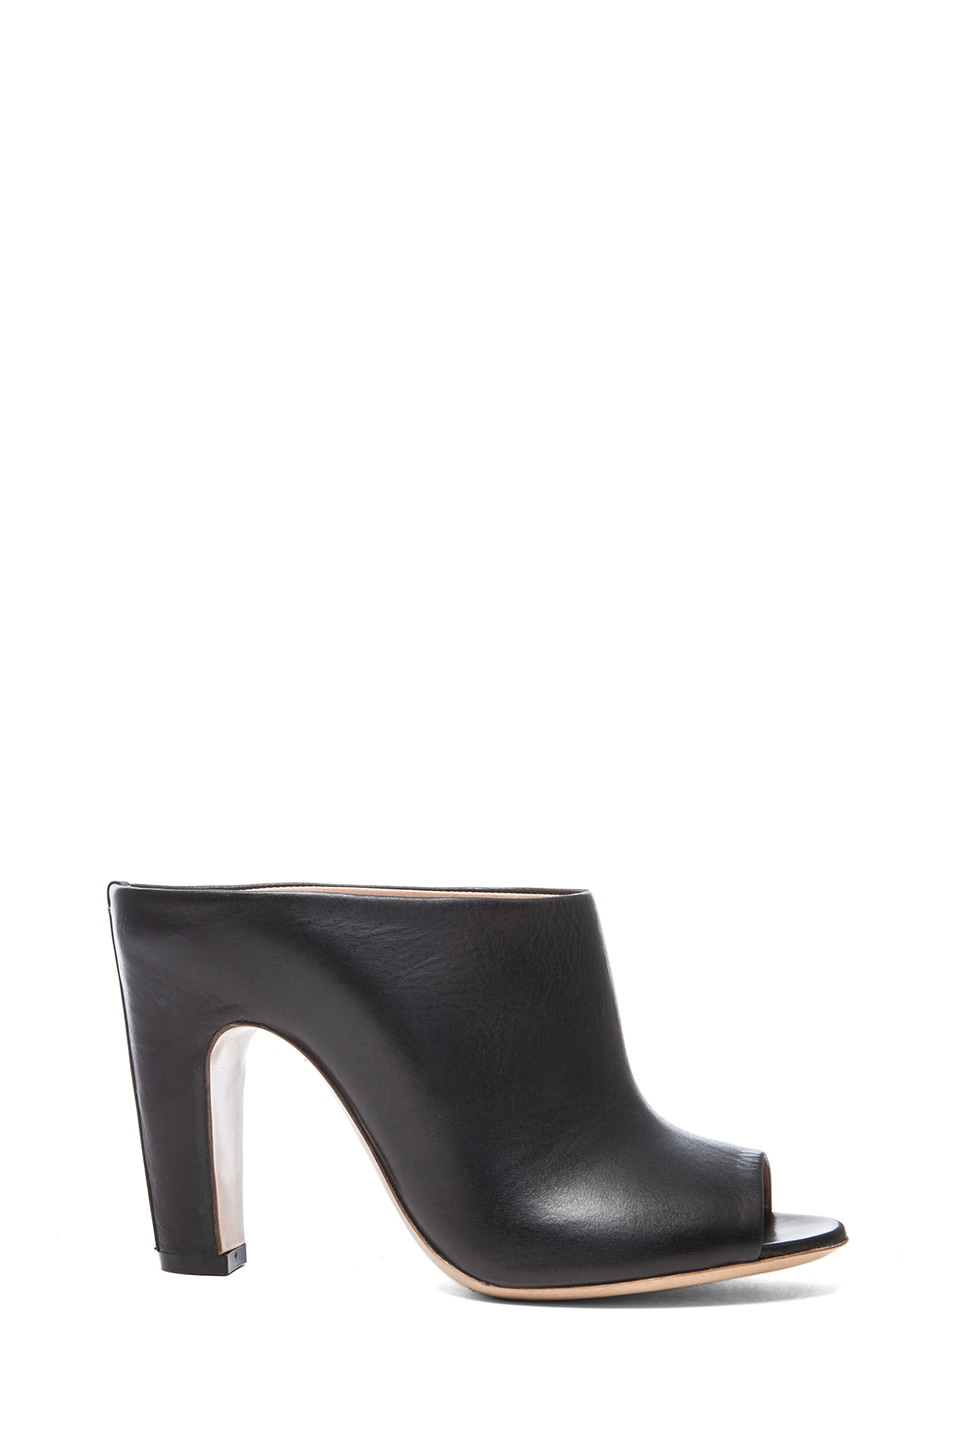 Image 1 of Maison Margiela Open Toe Leather Mules in Black